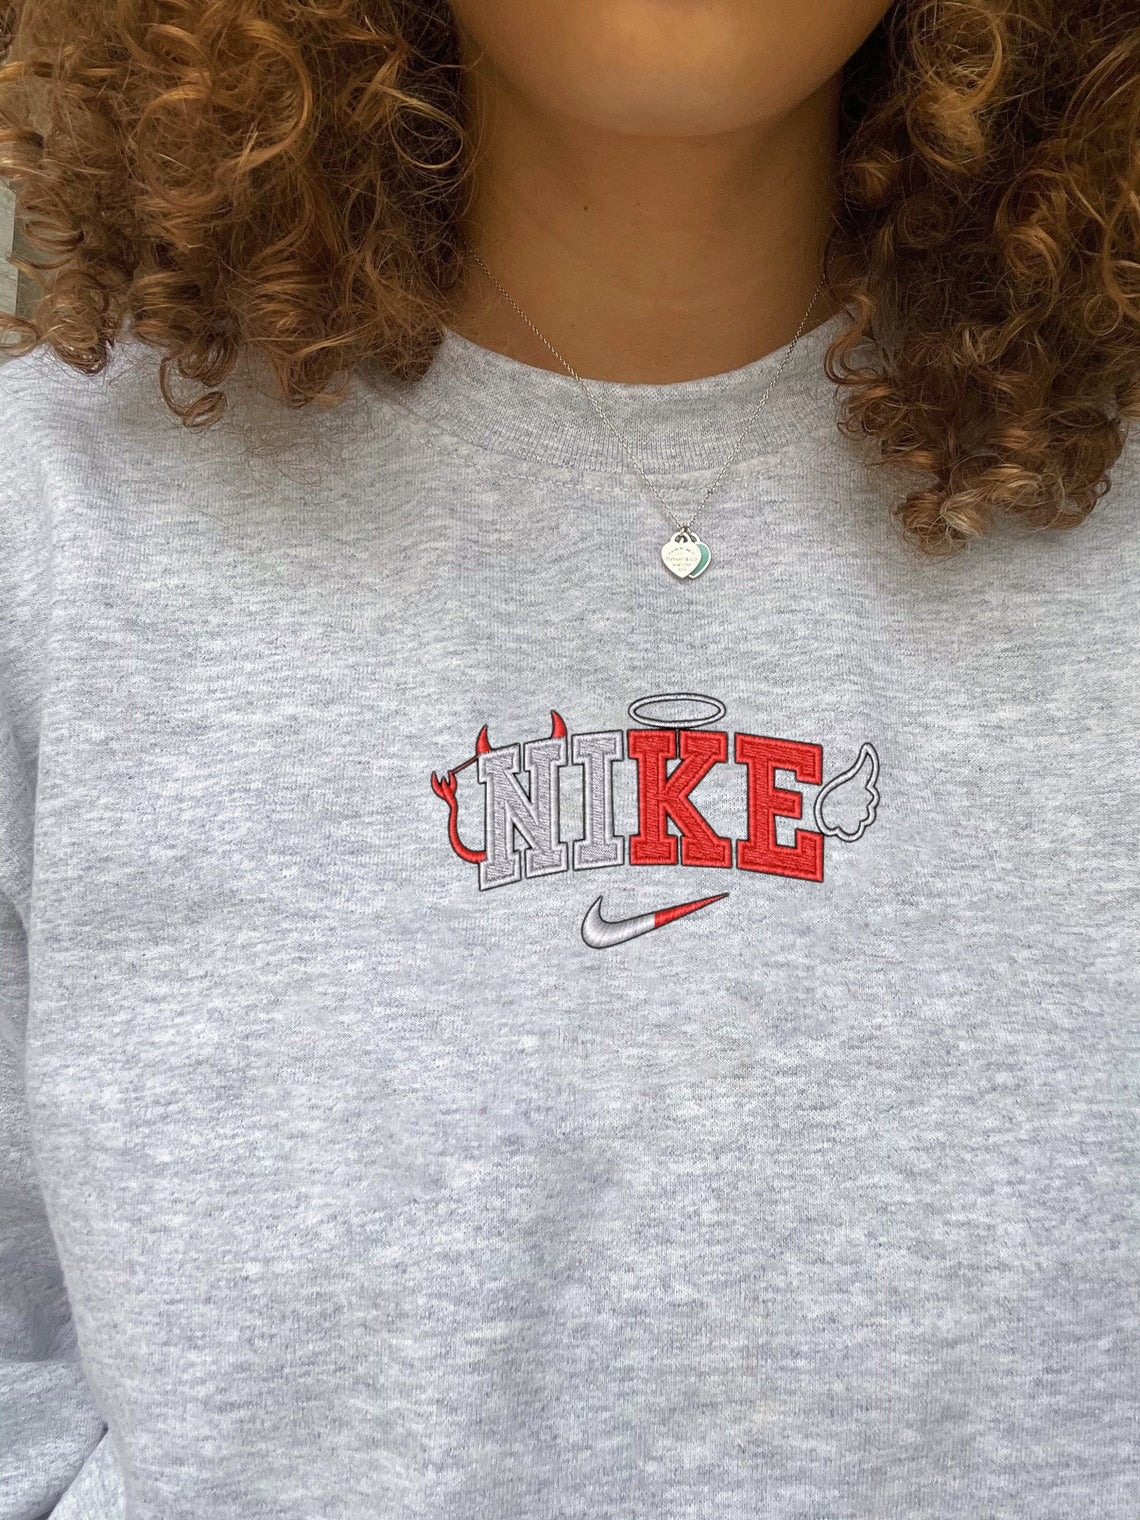 Nike 90s Vintage Embroidered Swoosh Sweatshirt/t-shirt/hoodie Embroidery